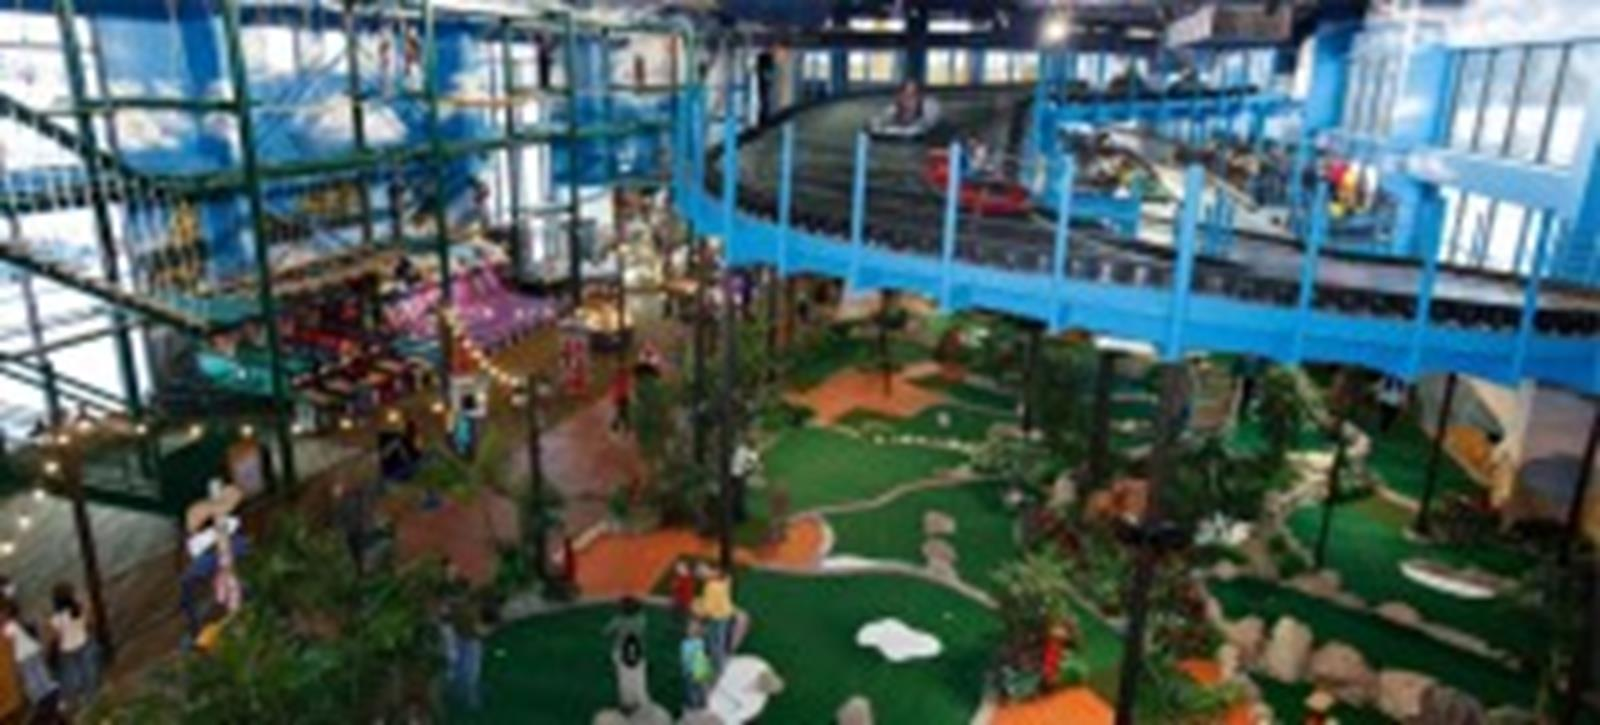 Wilderness Hotel & Golf Resort, America's largest combination indoor and outdoor waterpark resort.